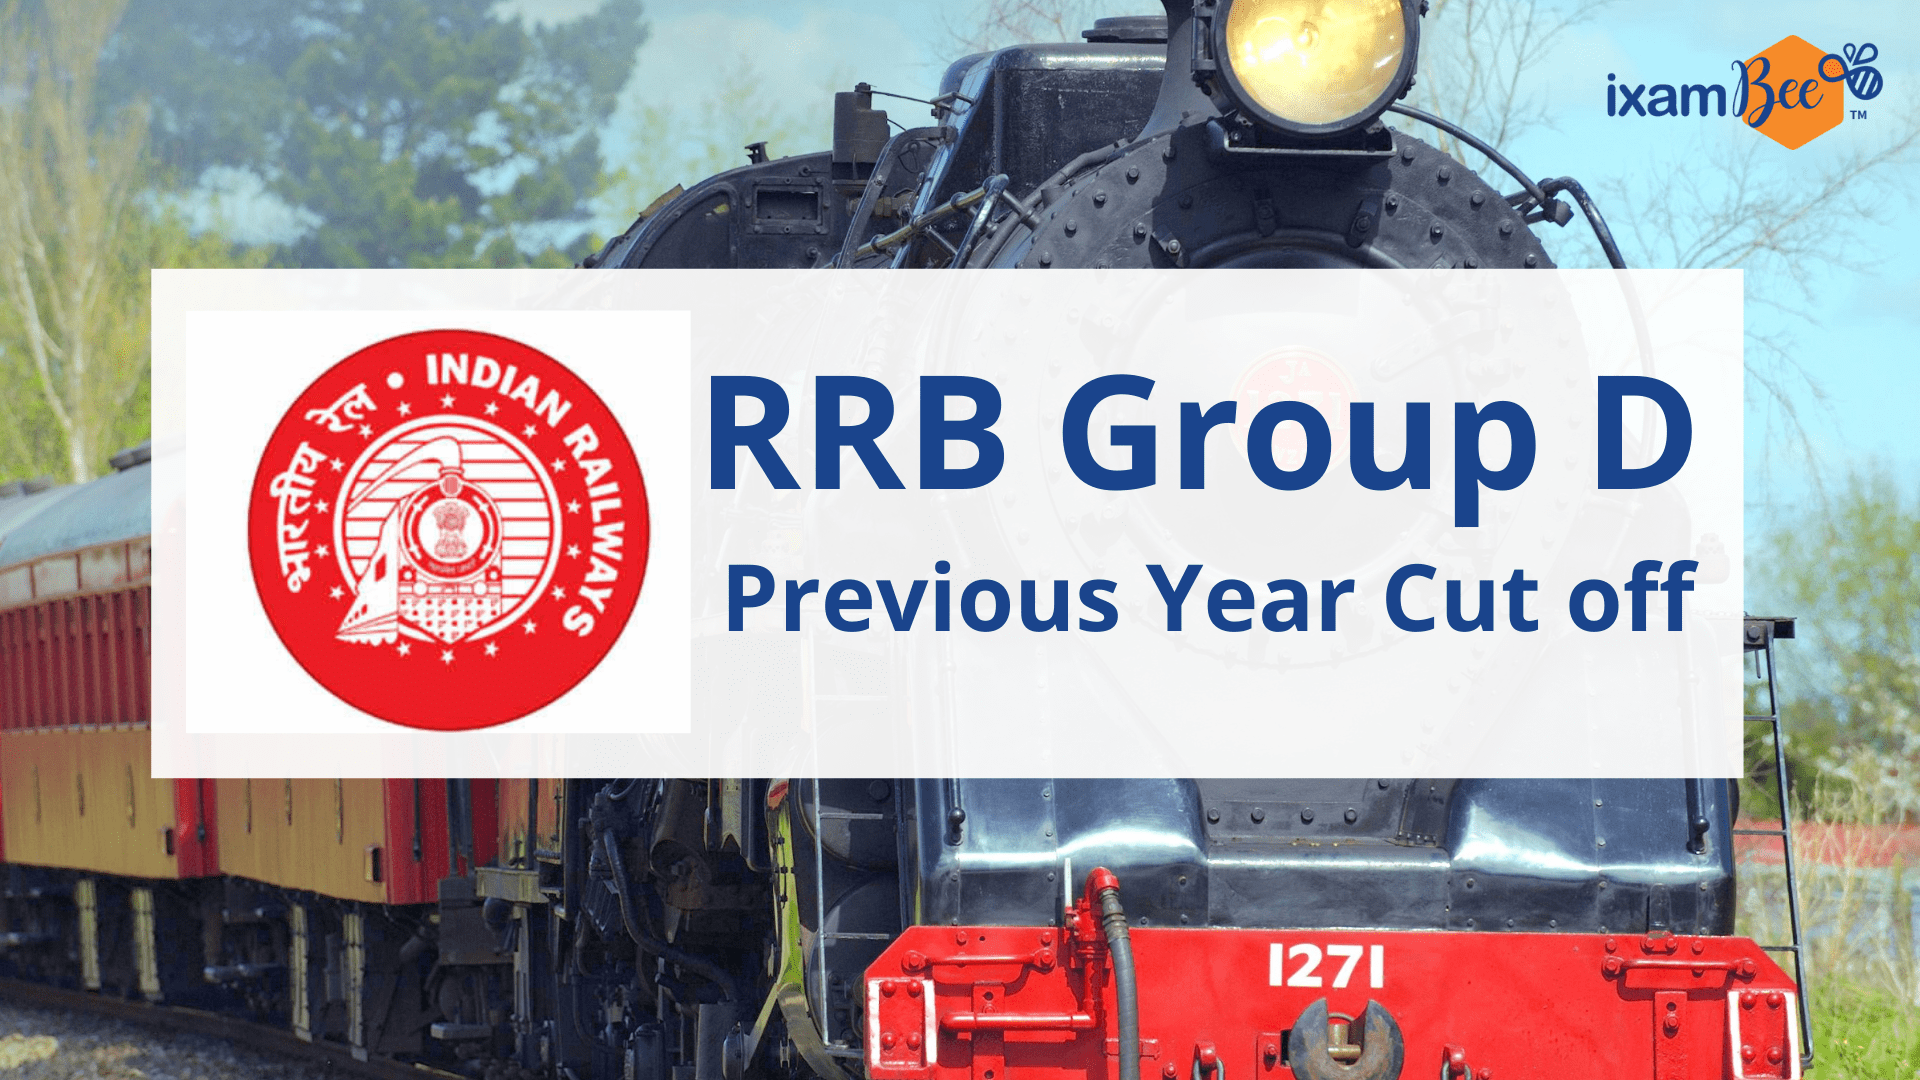 RRB Group D Previous Year Cut Off